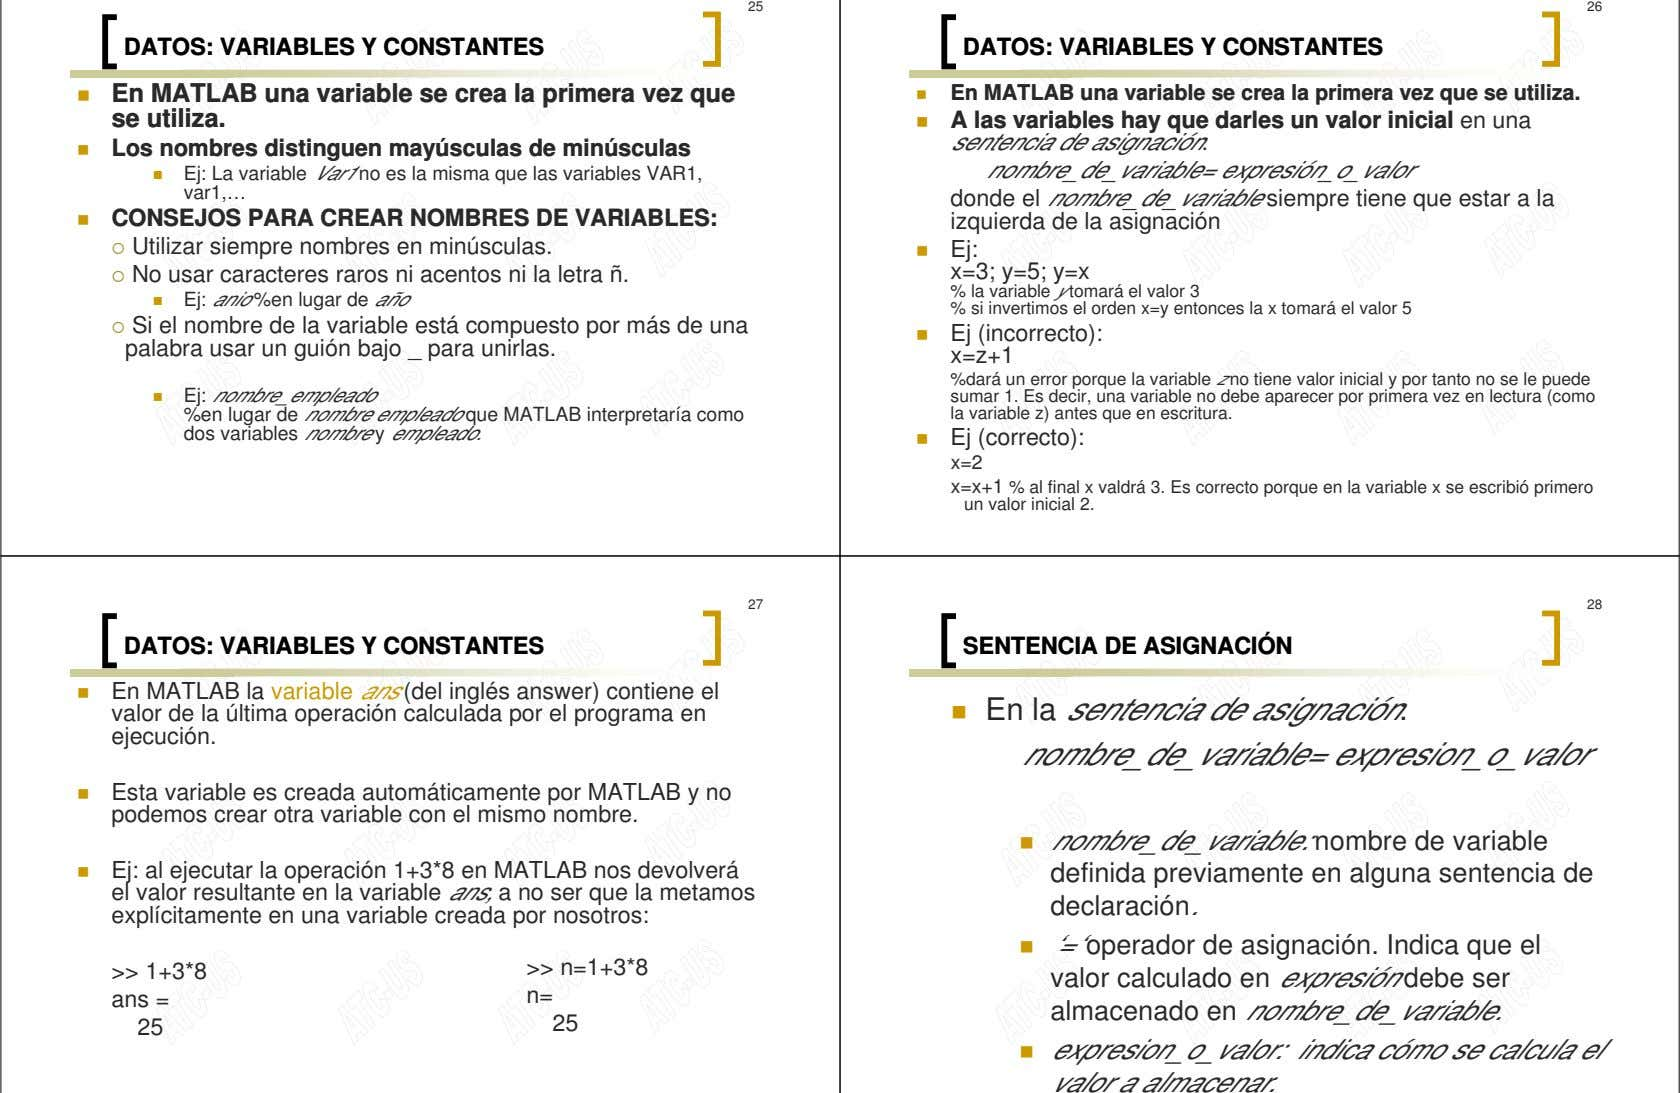 25 26 DATOS: VARIABLES Y CONSTANTES DATOS: VARIABLES Y CONSTANTES En MATLAB una variable se